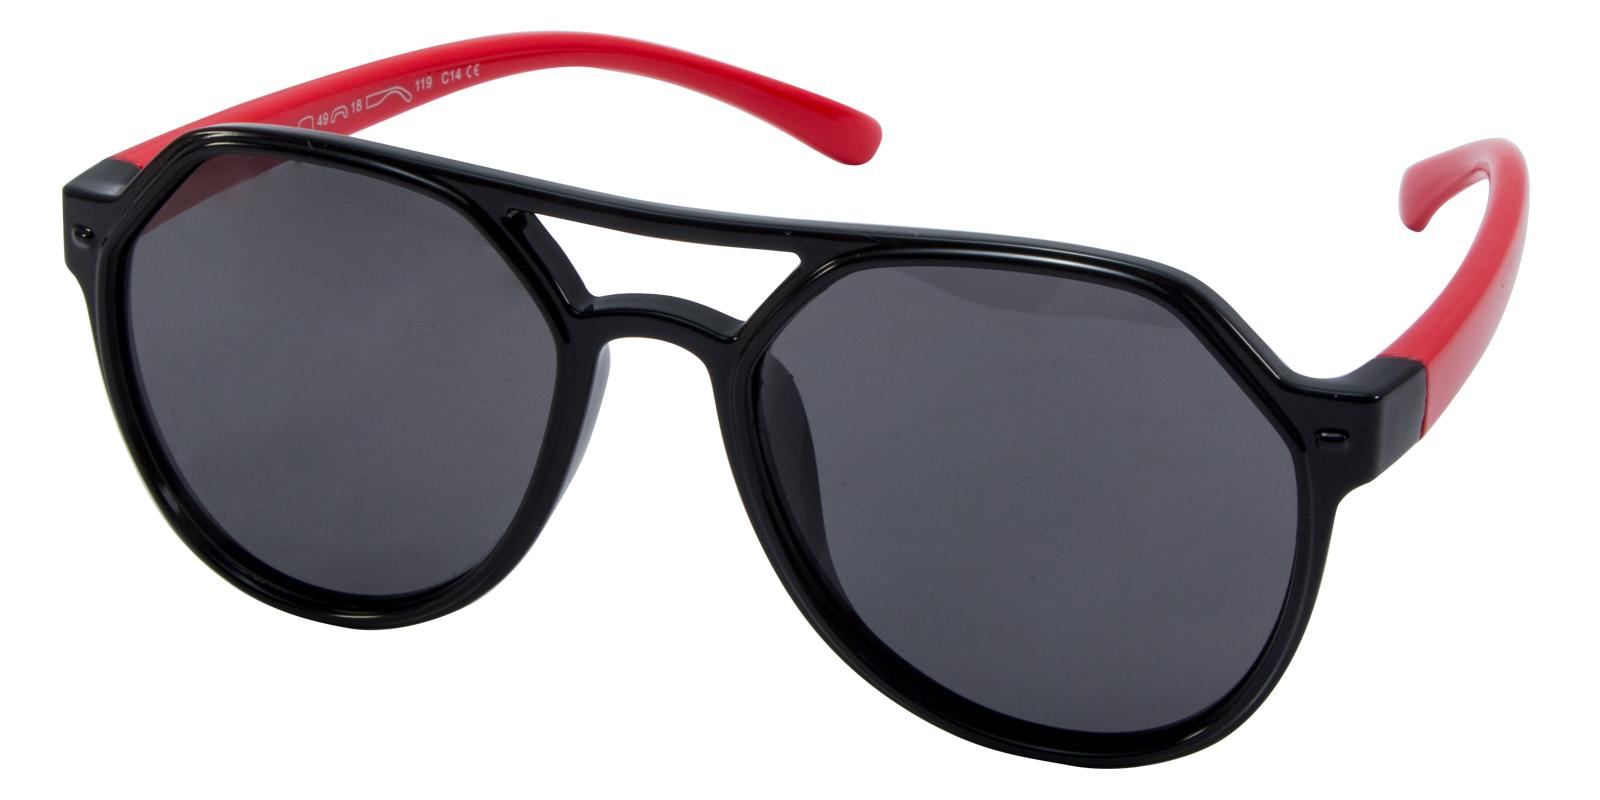 Triton Black TR Sunglasses , UniversalBridgeFit Frames from ABBE Glasses